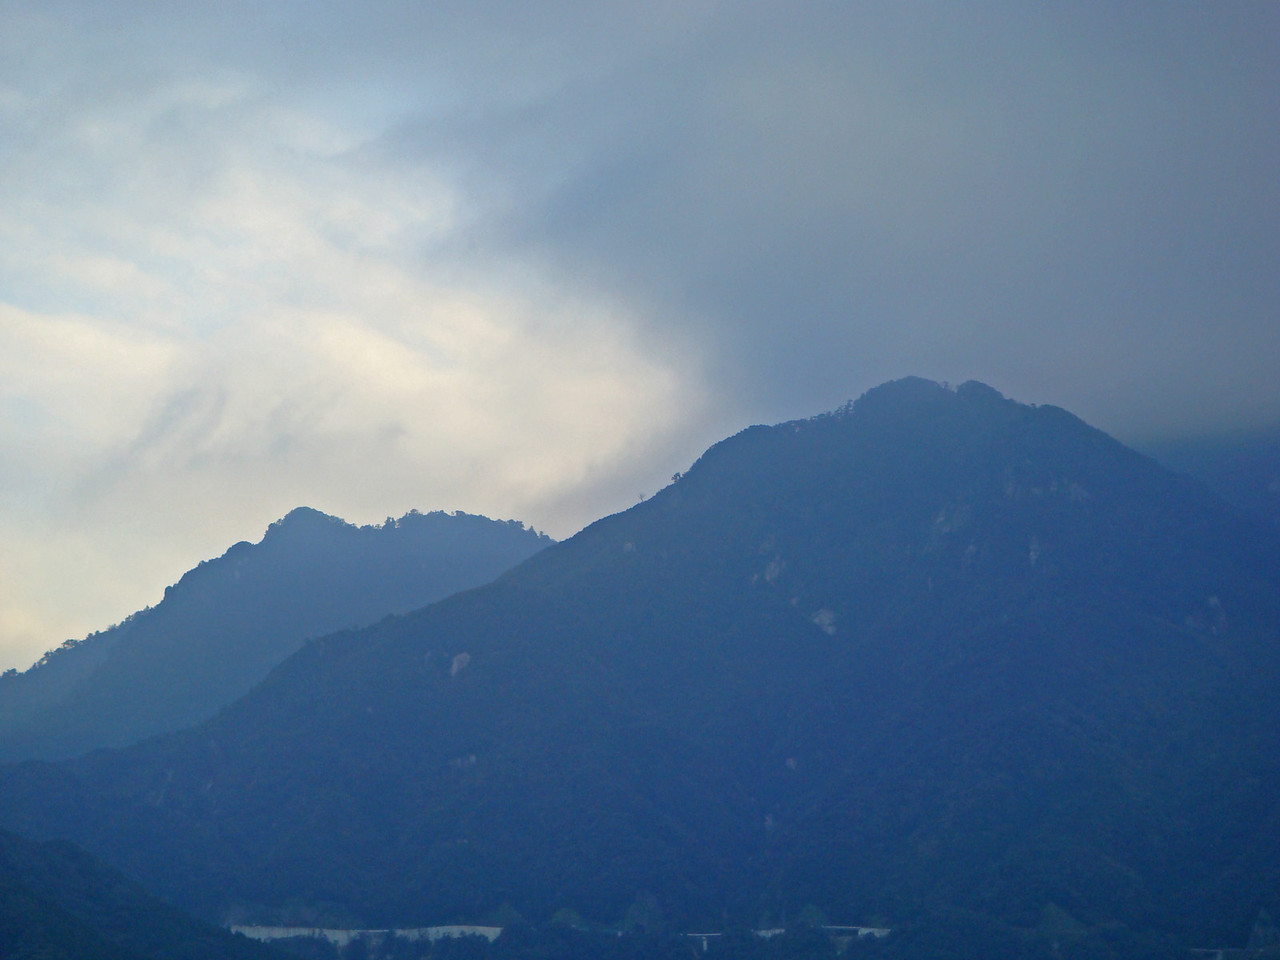 Silhouette of two mountains against foggy sky in Yakushima, Japan